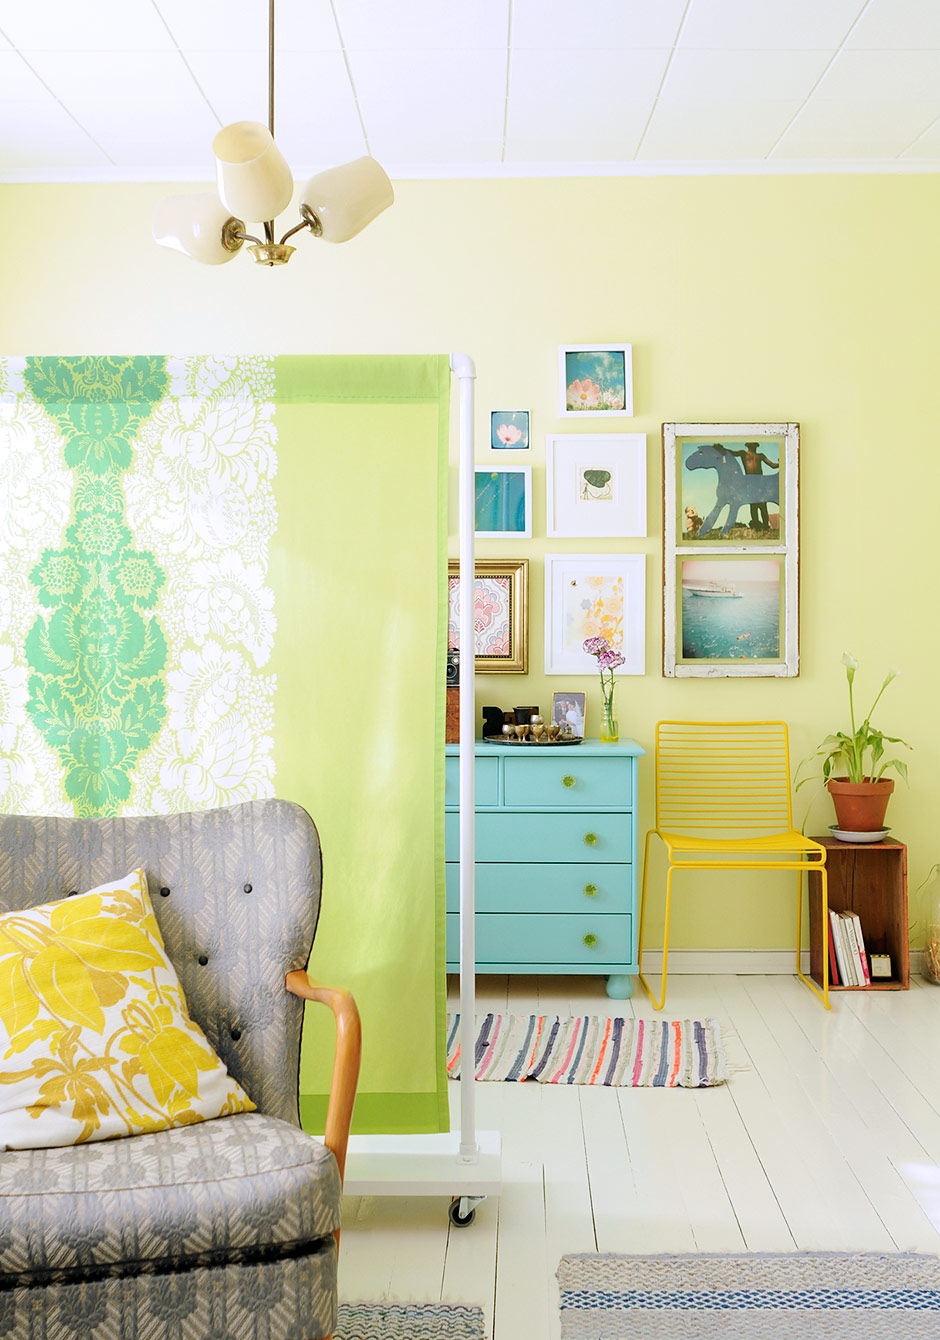 diy fabric screen room divider - Room Dividers Ideas